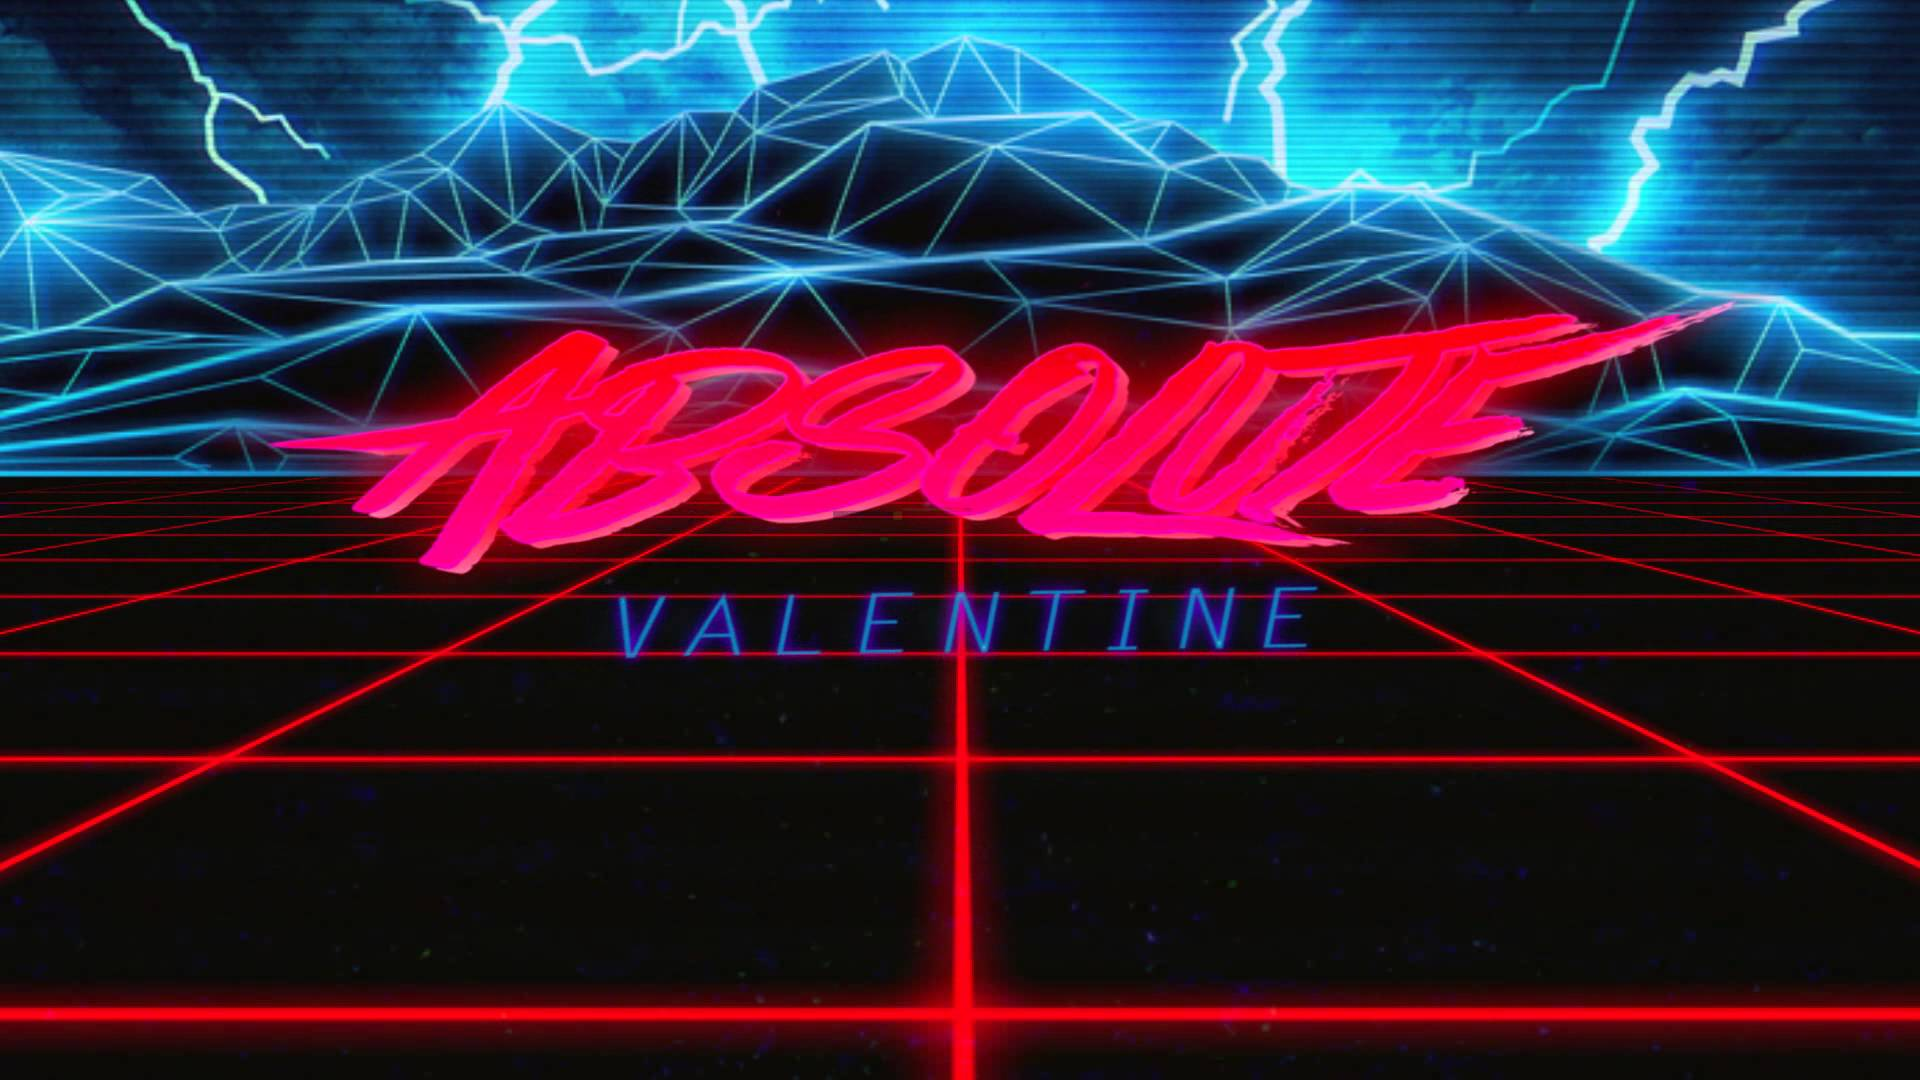 Absolute+Valentine - Absolute Valentine - Light In The Dark